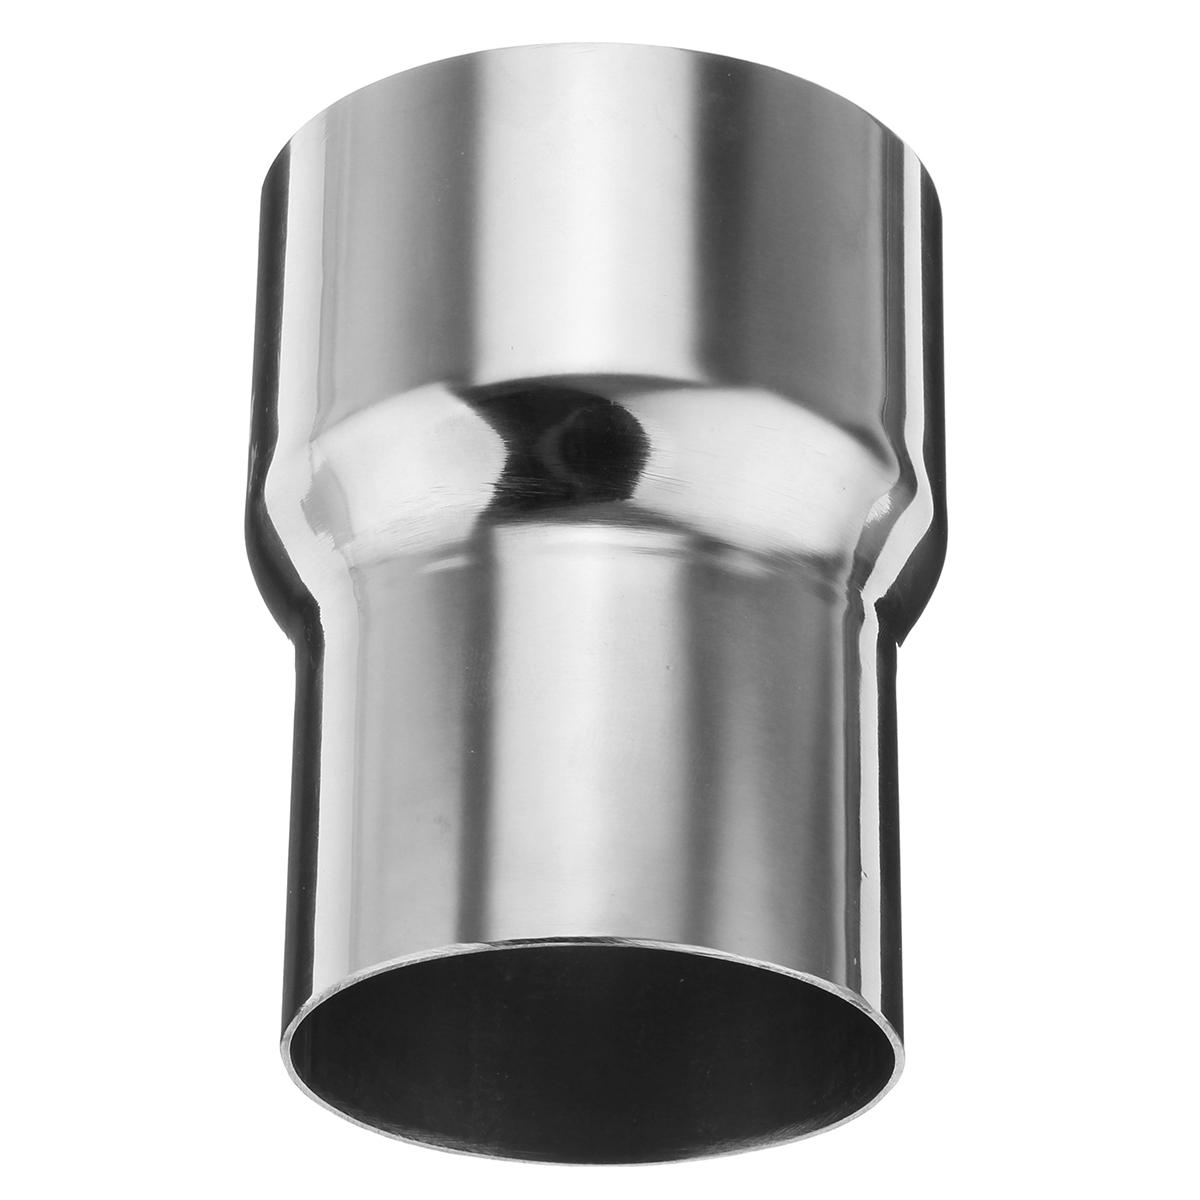 stainless standard exhaust pipe connector pipe adapter reducer tube easy weld on or clamp on